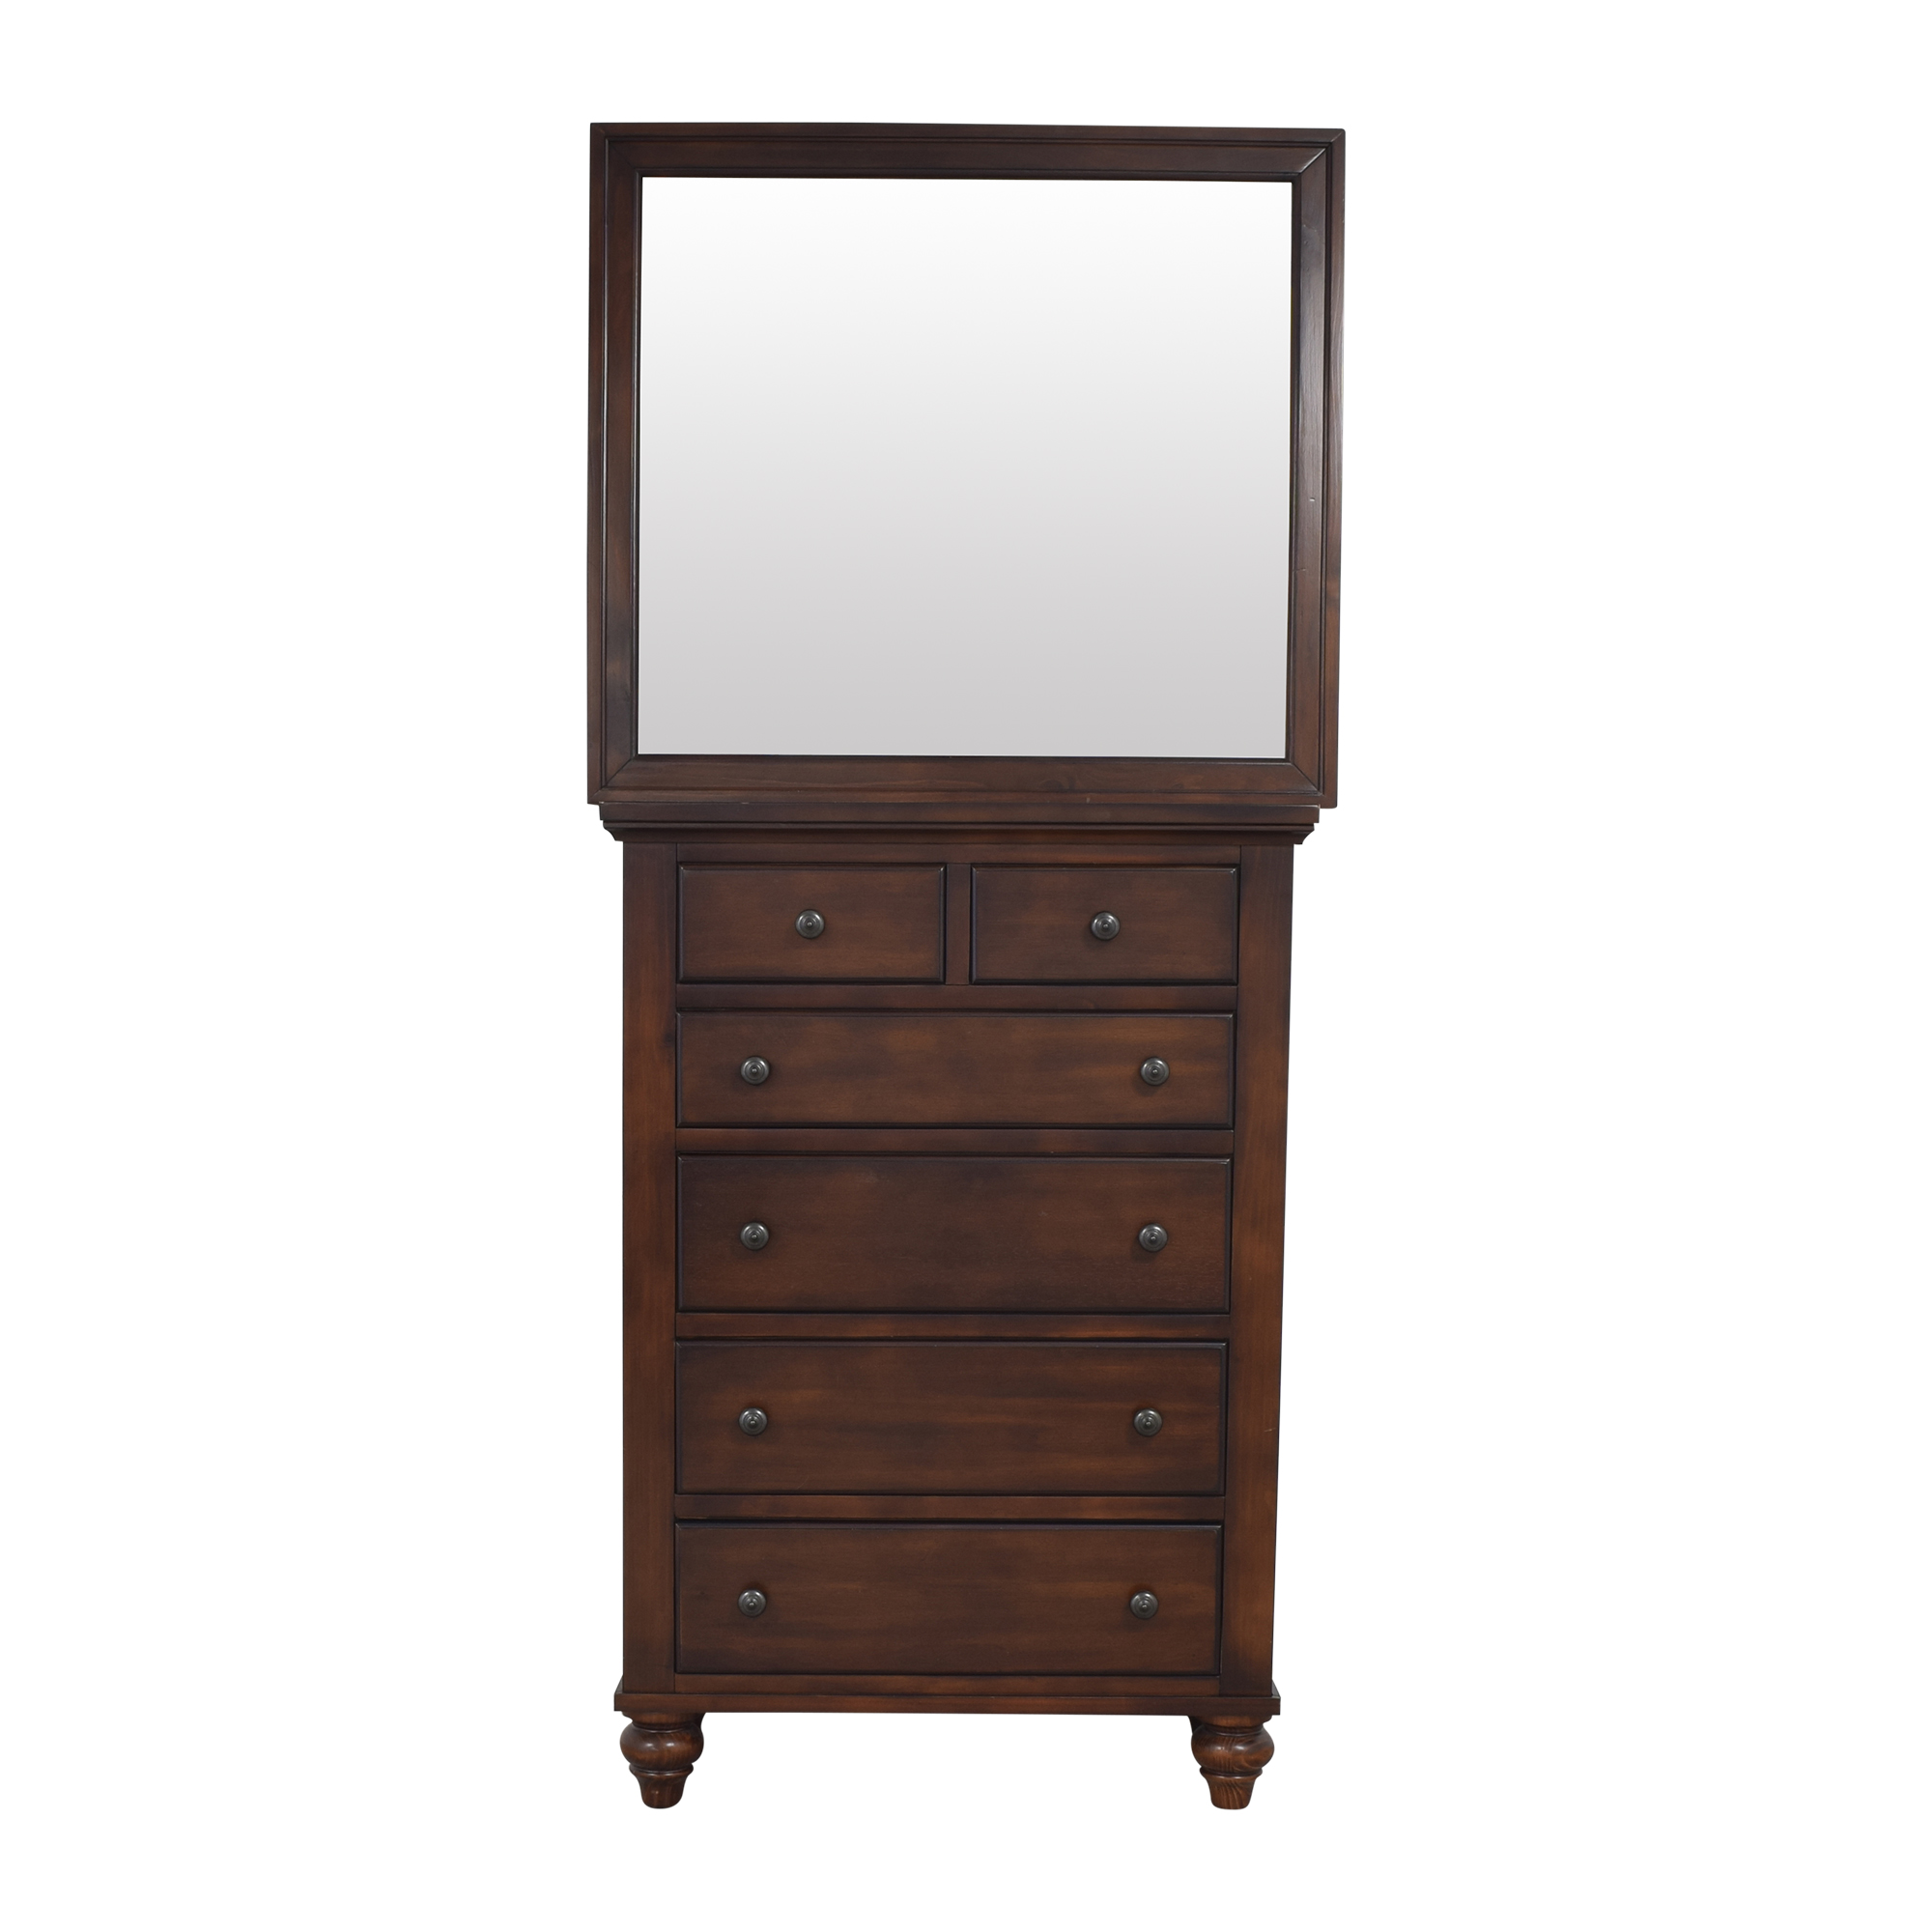 Raymour & Flanigan Raymour & Flanigan Six Drawer Chest with Mirror for sale